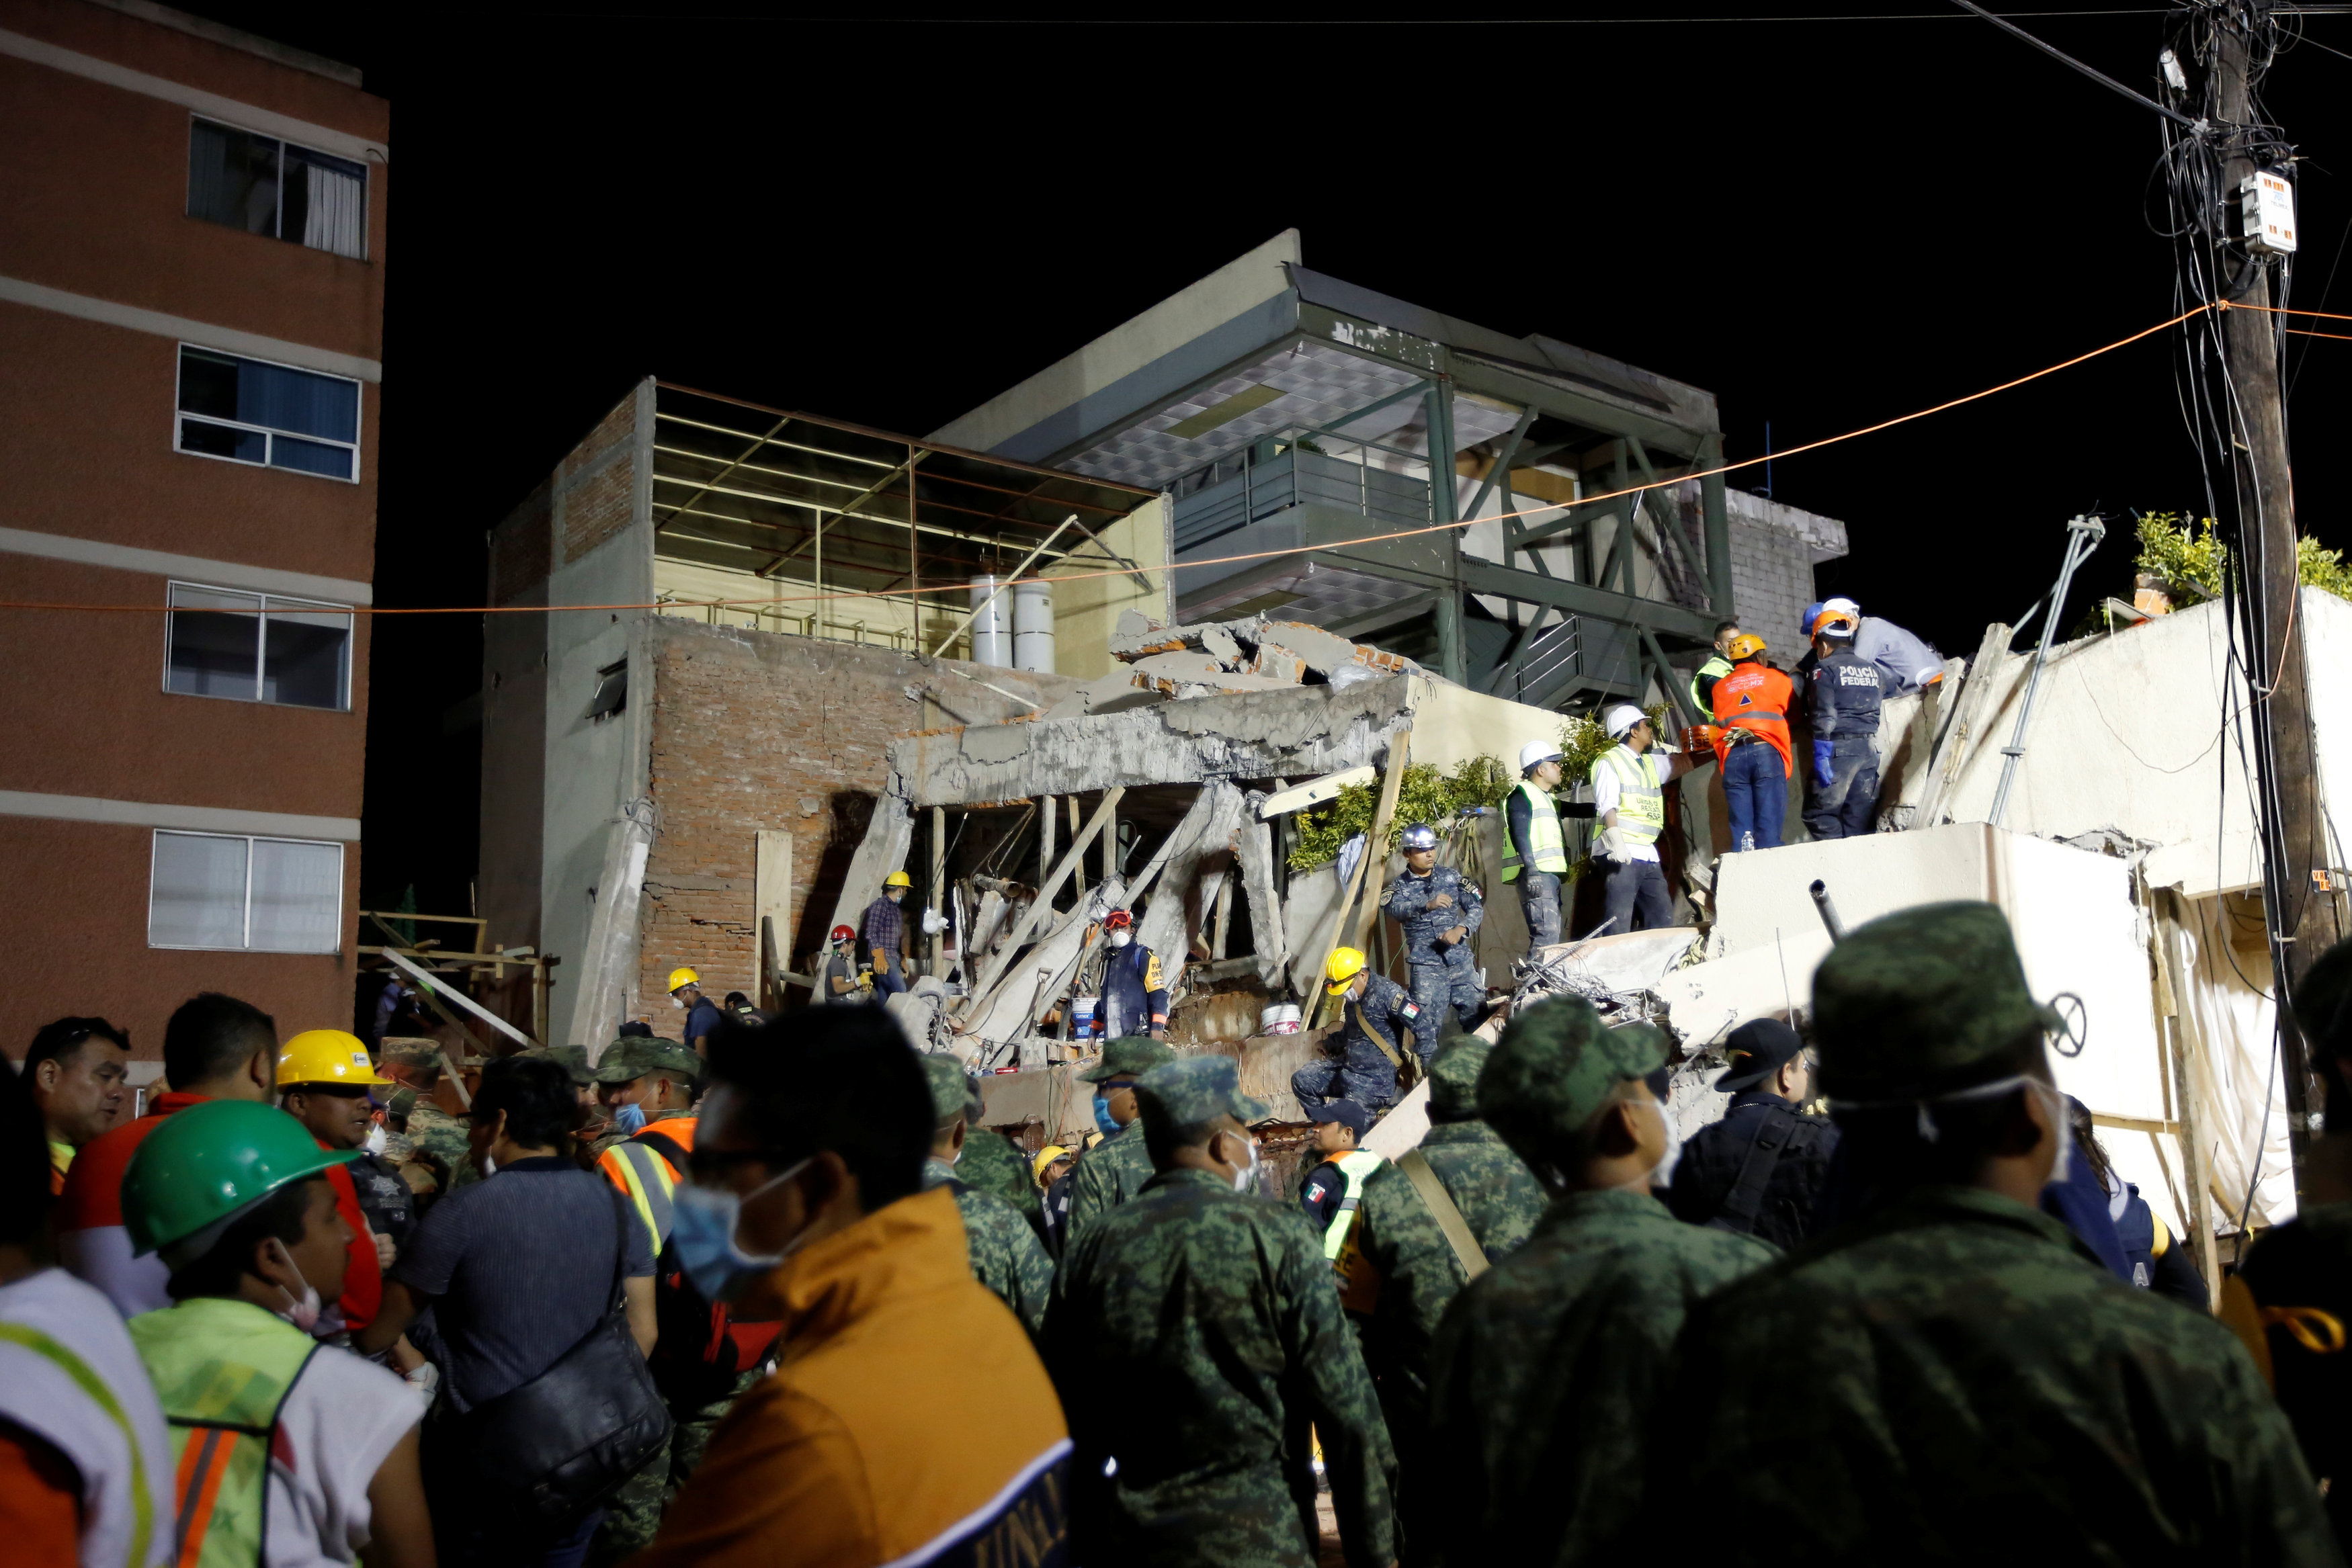 Rescue workers search through rubble during a floodlit search for students at Enrique Rebsamen school in Mexico City, Mexico September 20, 2017. REUTERS/Carlos Jasso